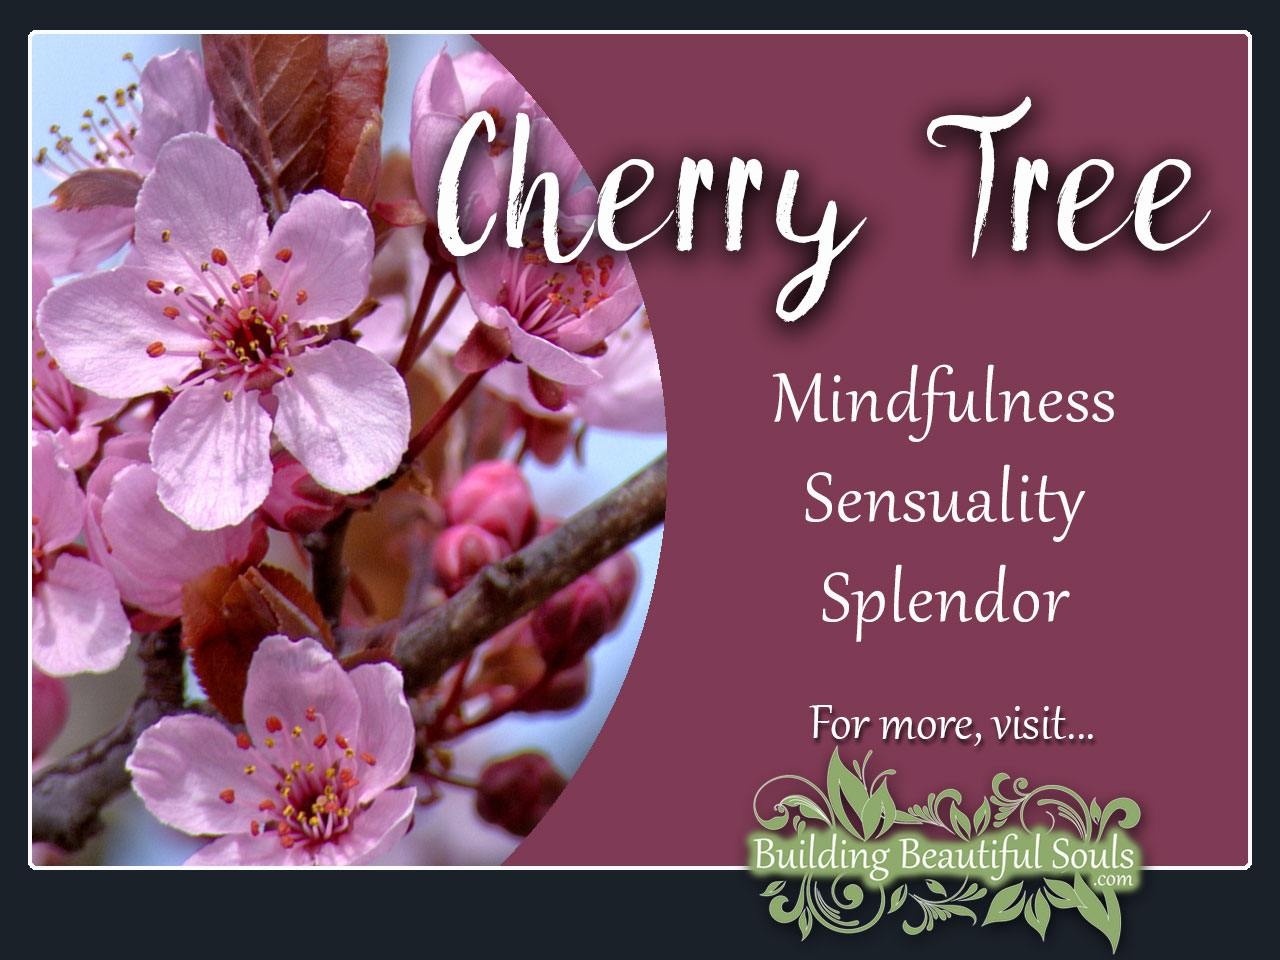 Cherry tree meaning symbolism tree symbolism meanings cherry tree meaning symbolism izmirmasajfo